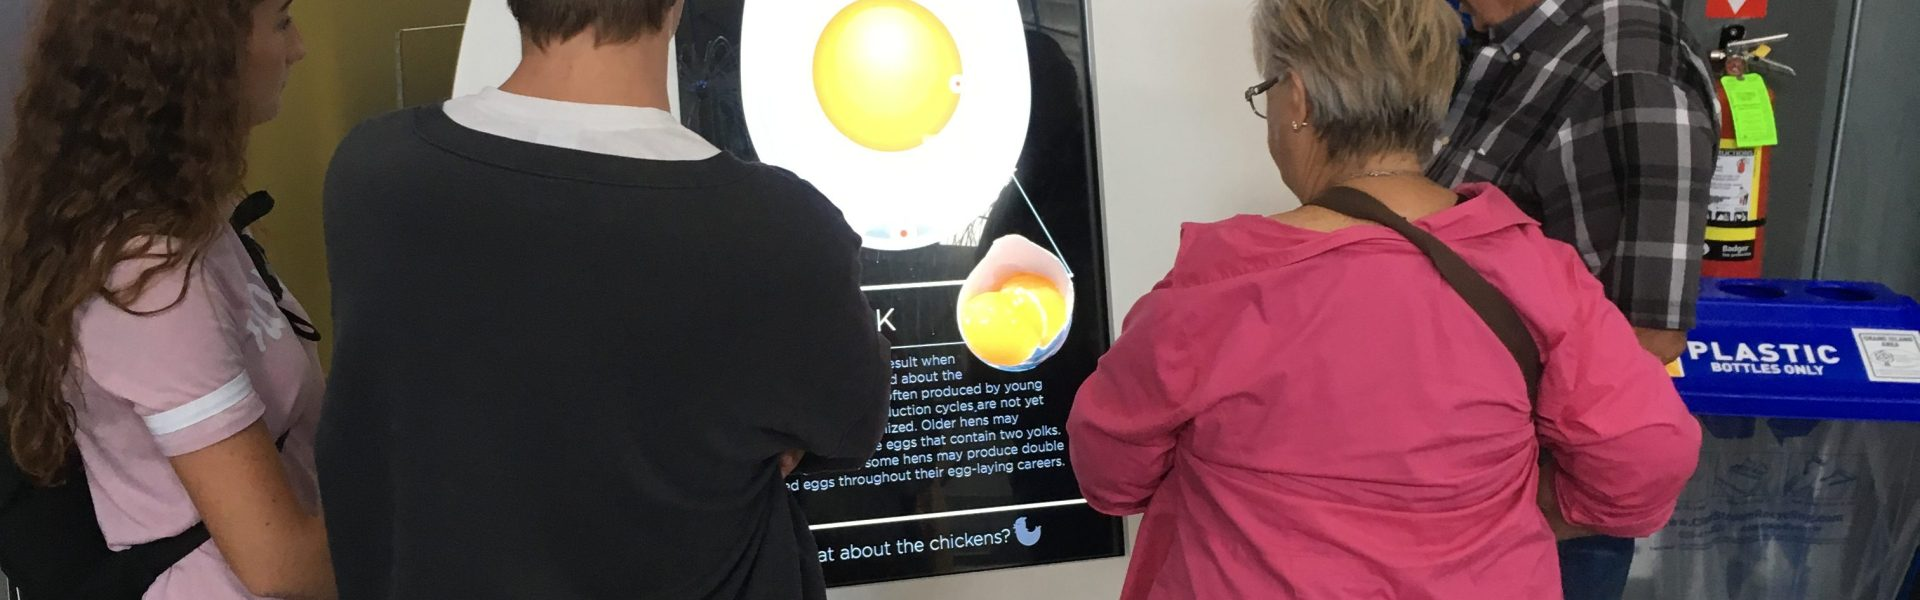 Family looking at Amazing Egg Exhibit